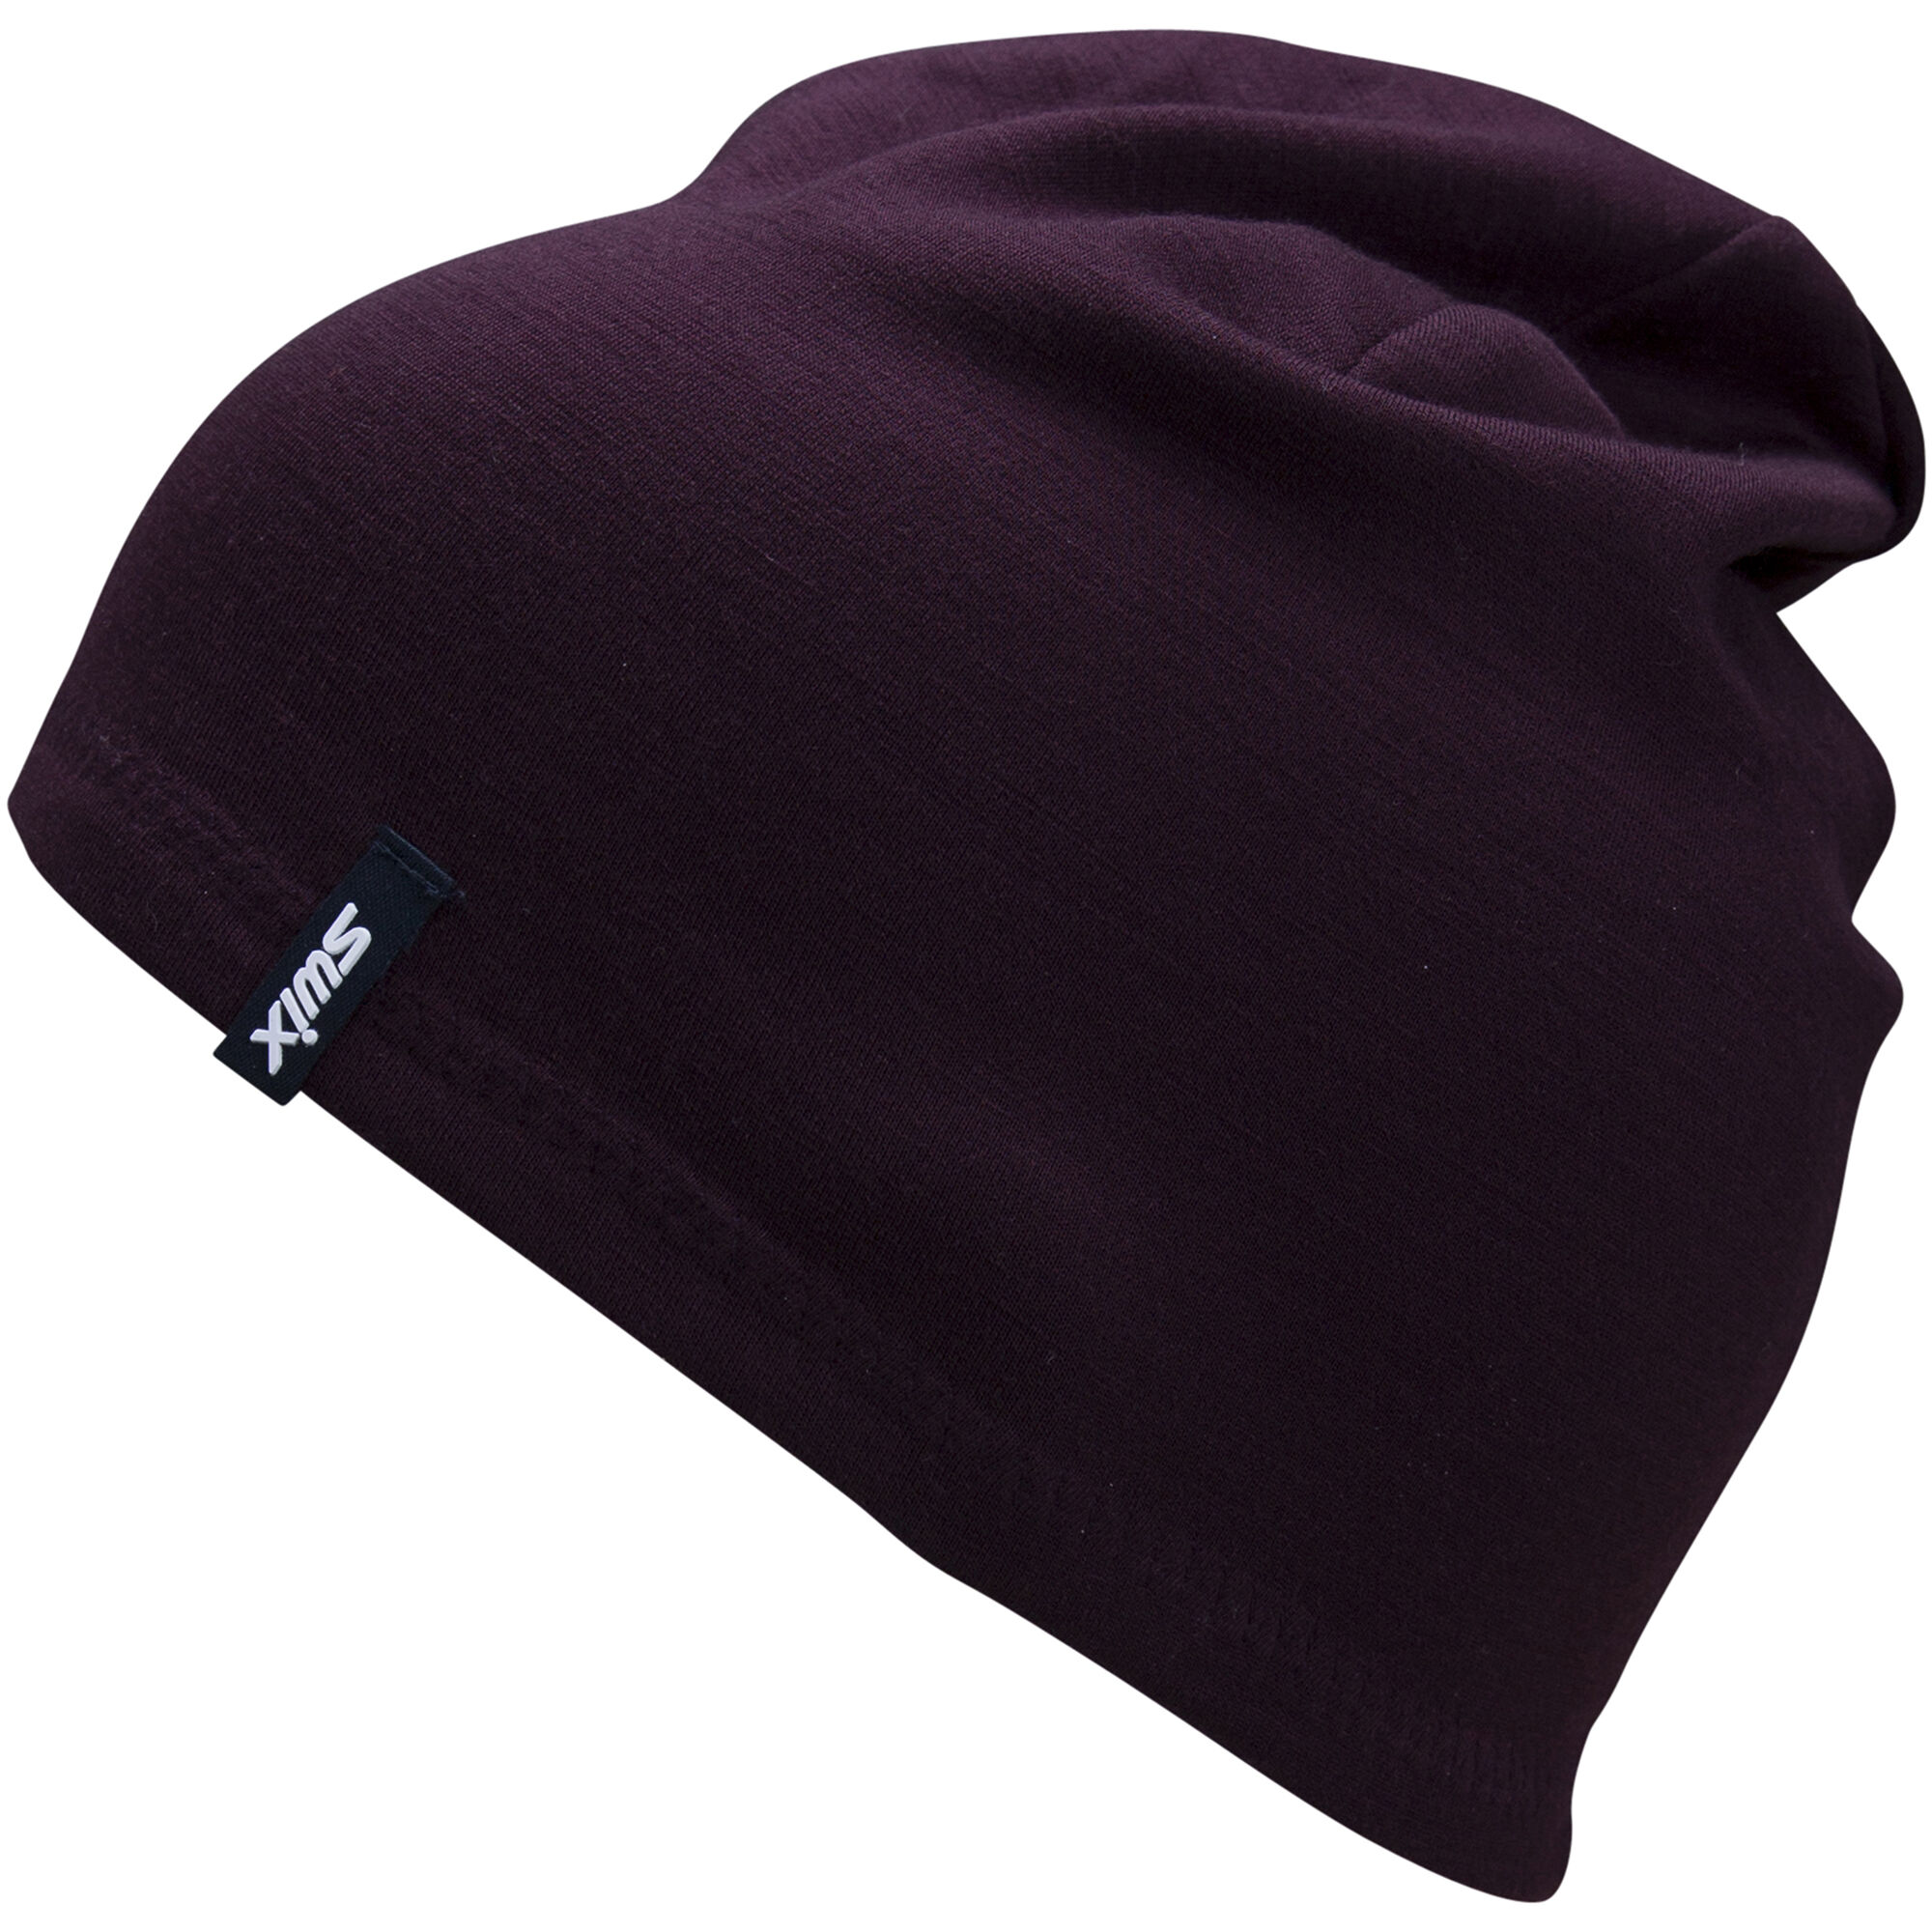 Love Roller Skate Unisex Great Thermal Cycling Beanie Hat